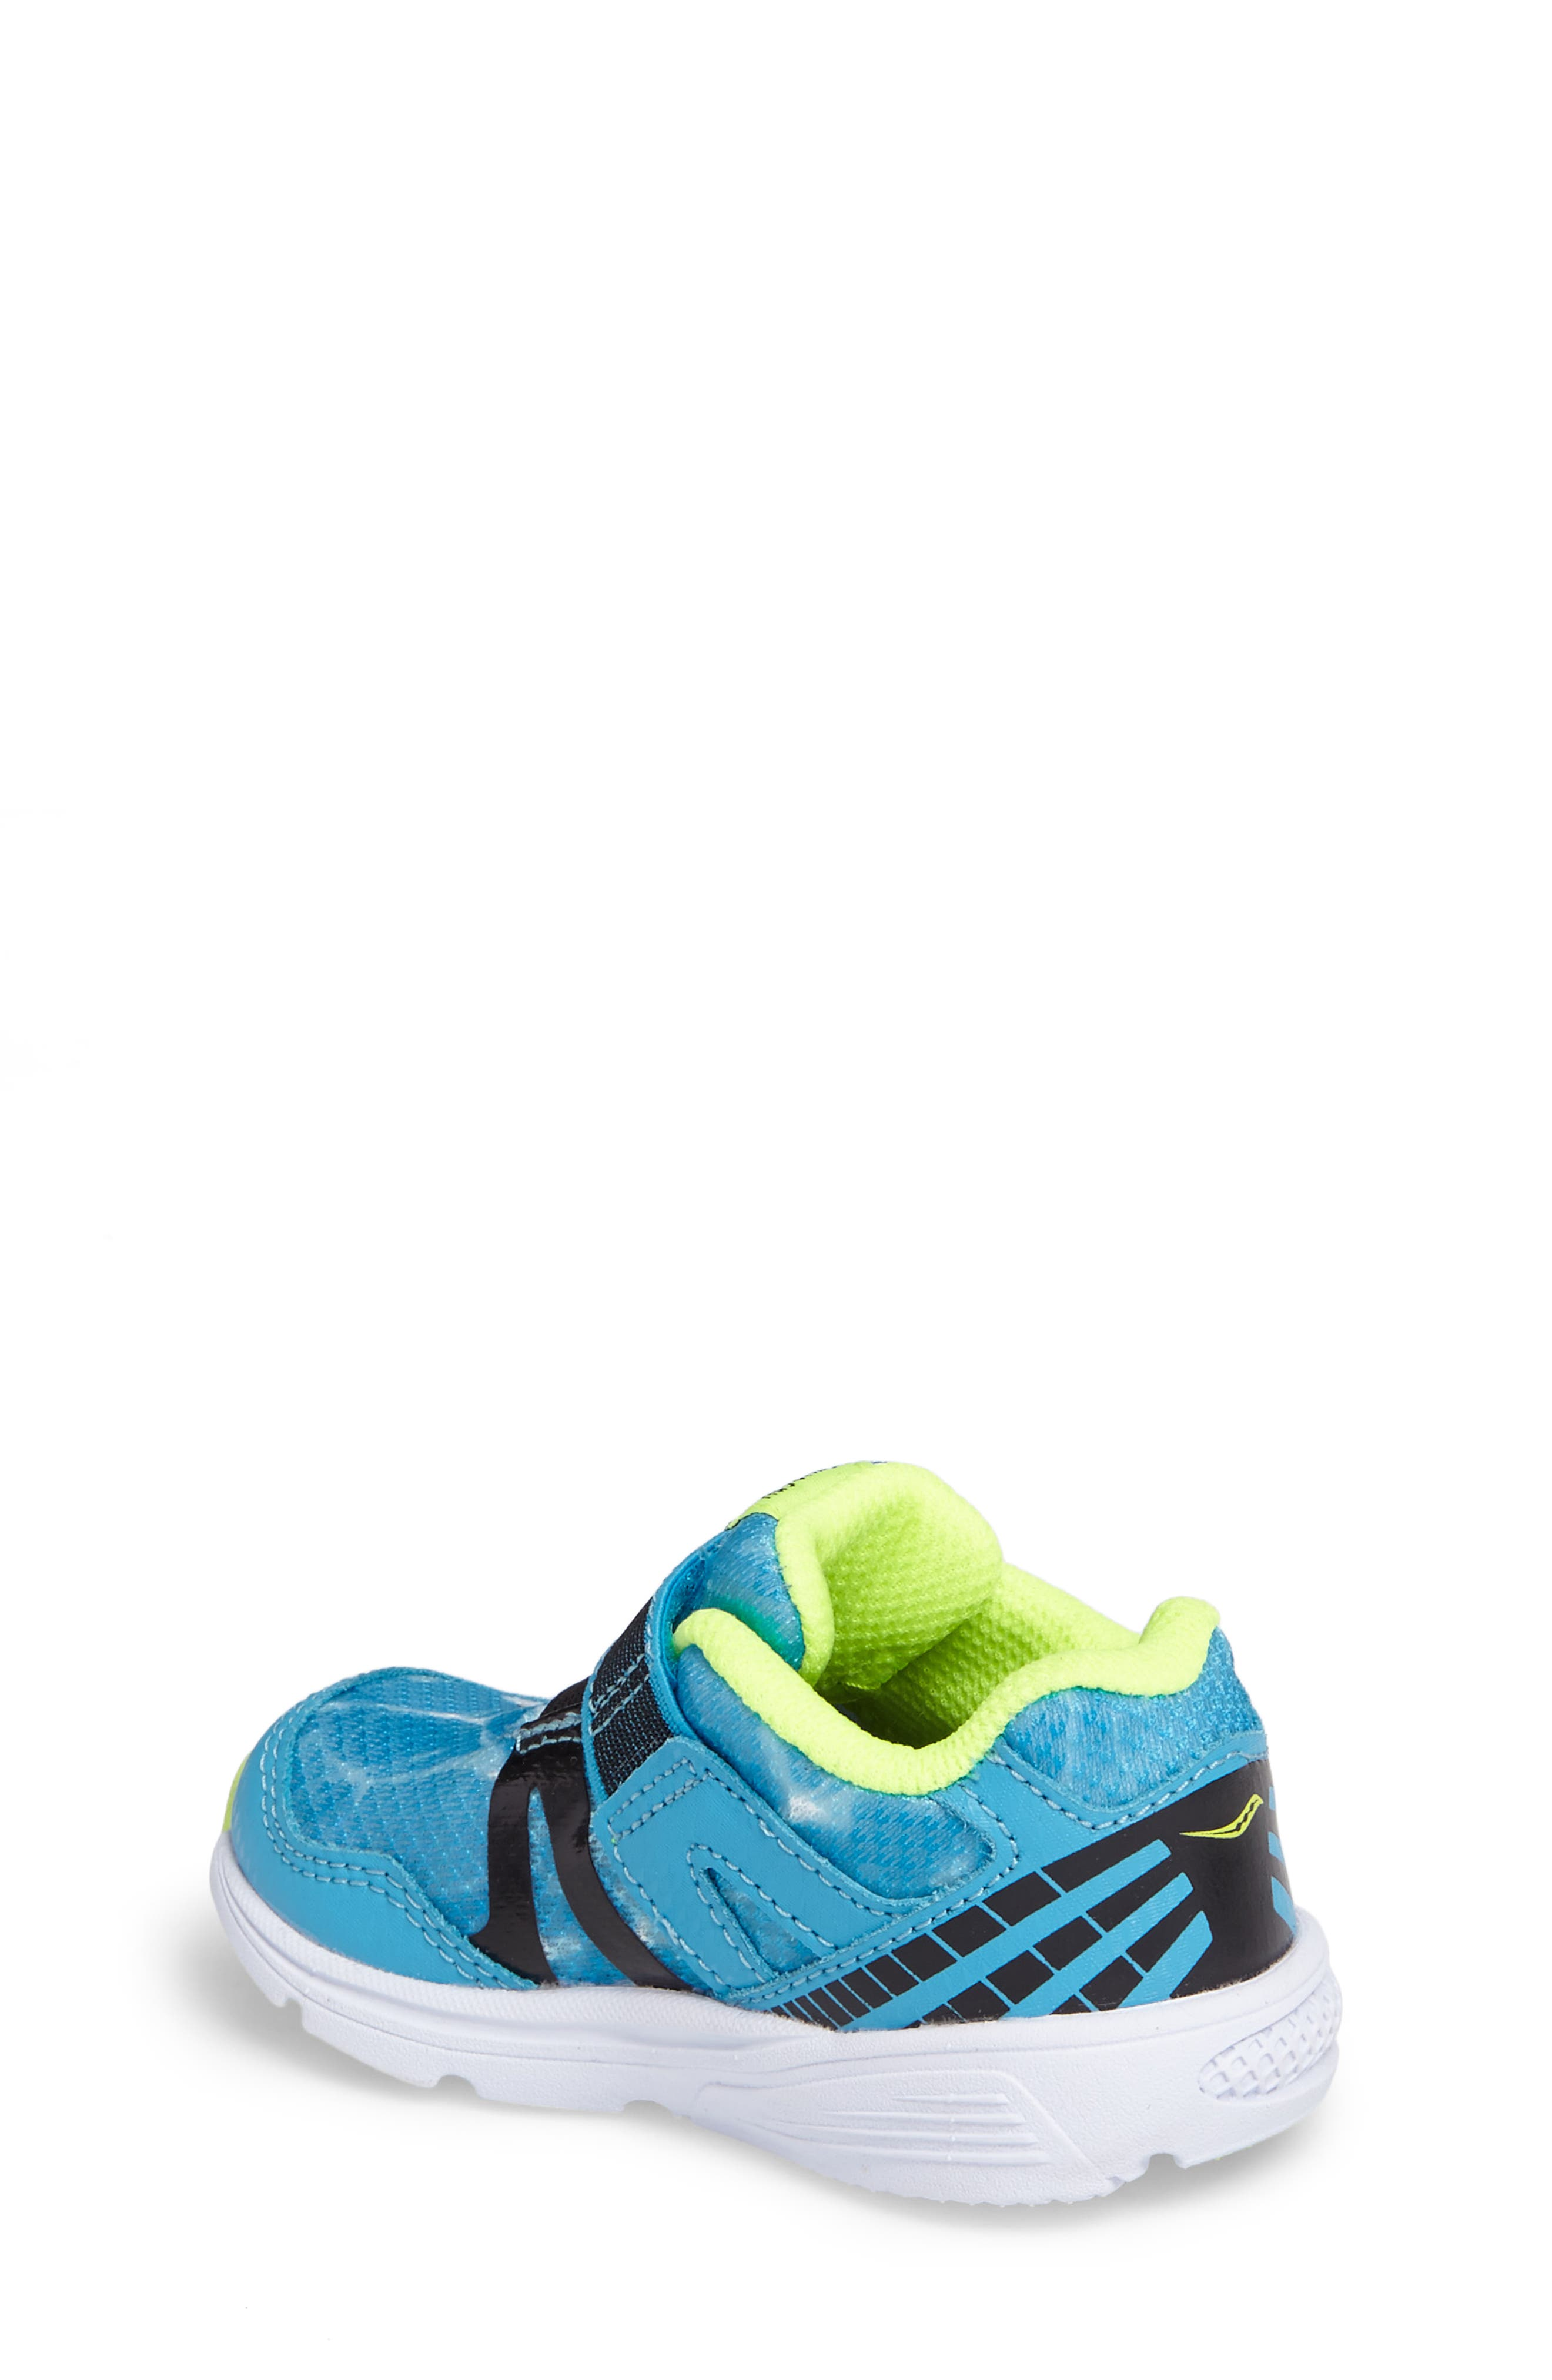 Baby Ride Pro Sneaker,                             Alternate thumbnail 2, color,                             Ocean Wave